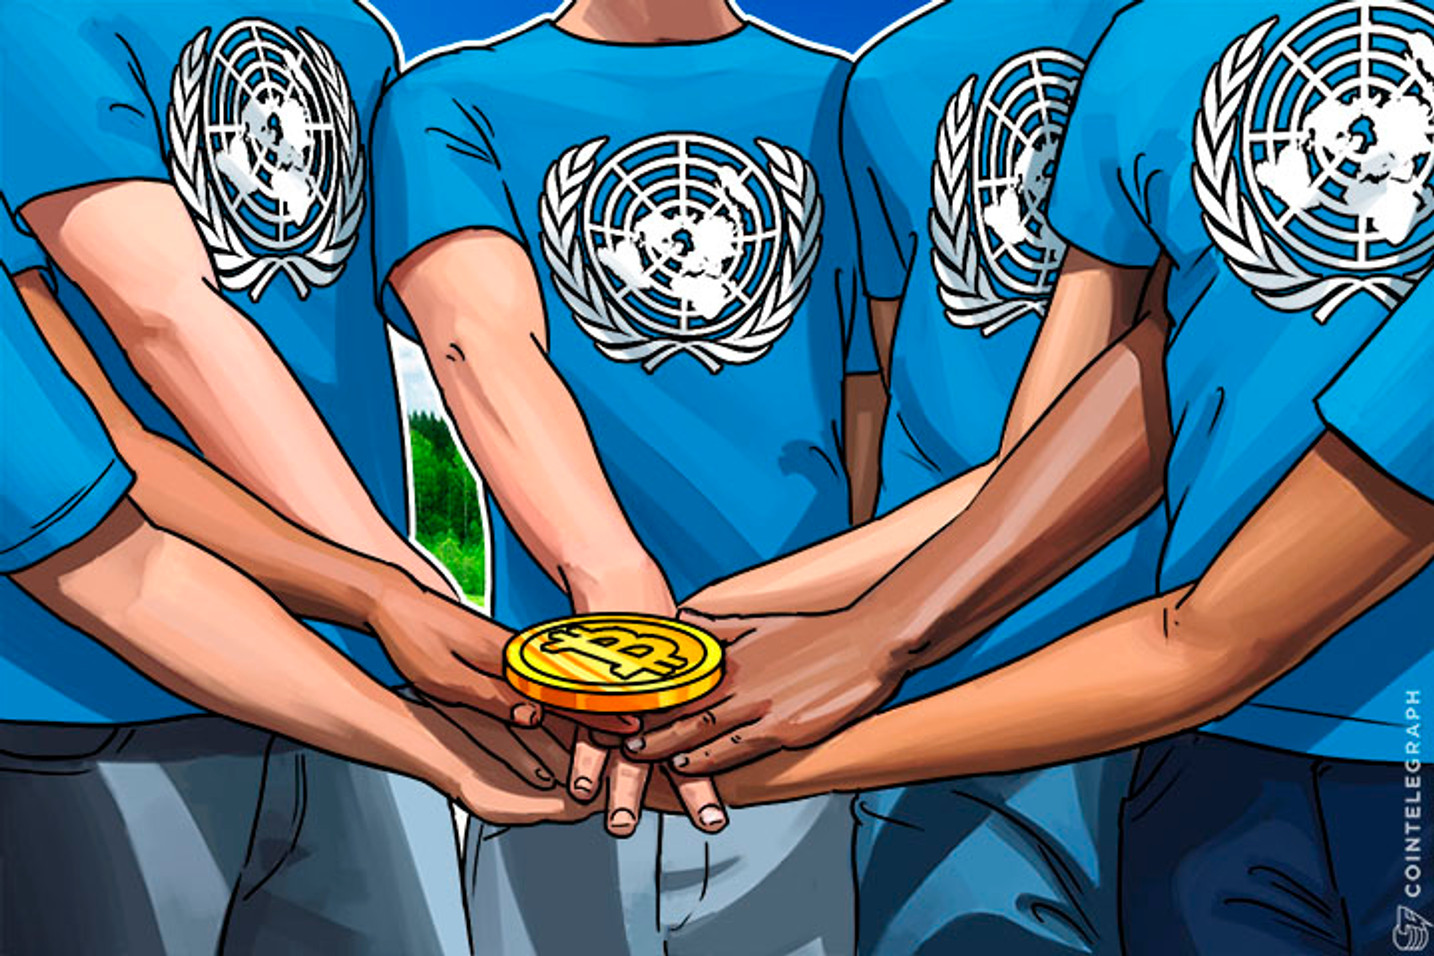 United Nations Wants Volunteers to Spread Bitcoin in Africa